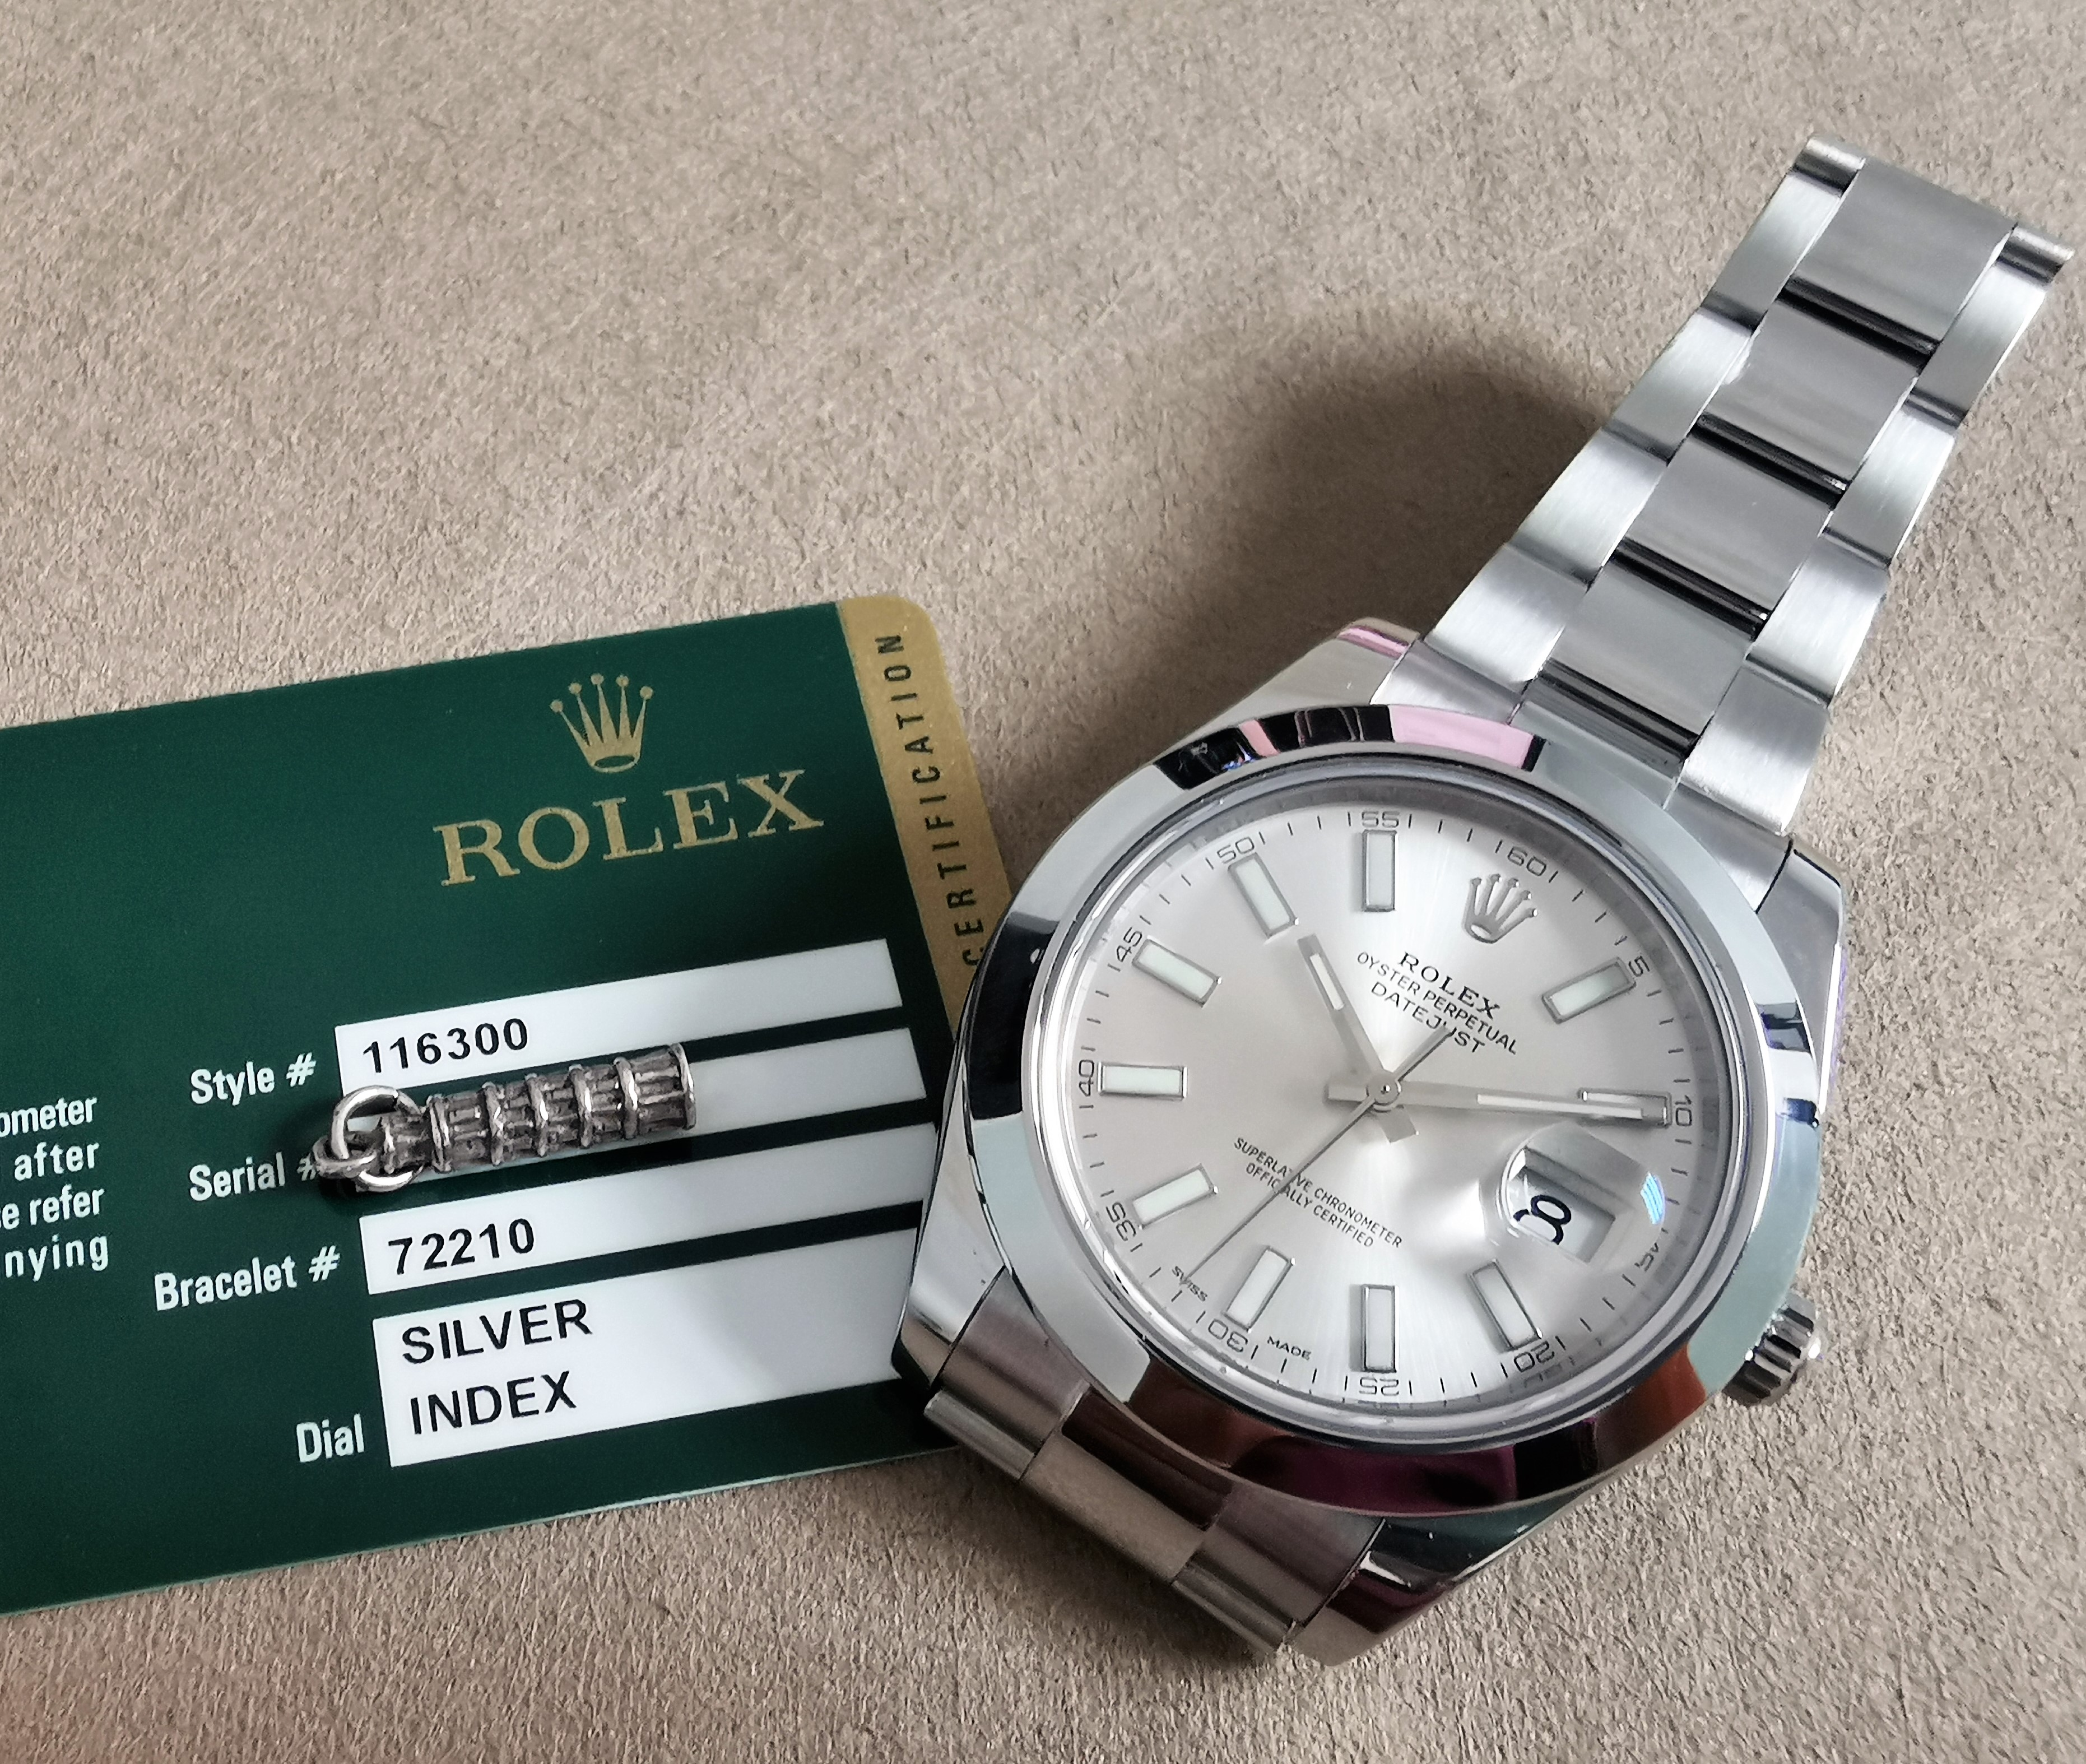 Rolex Datejust II Datejust II Stainless Steel Smooth Bezel Silver dial 116300 | San Giorgio a Cremano